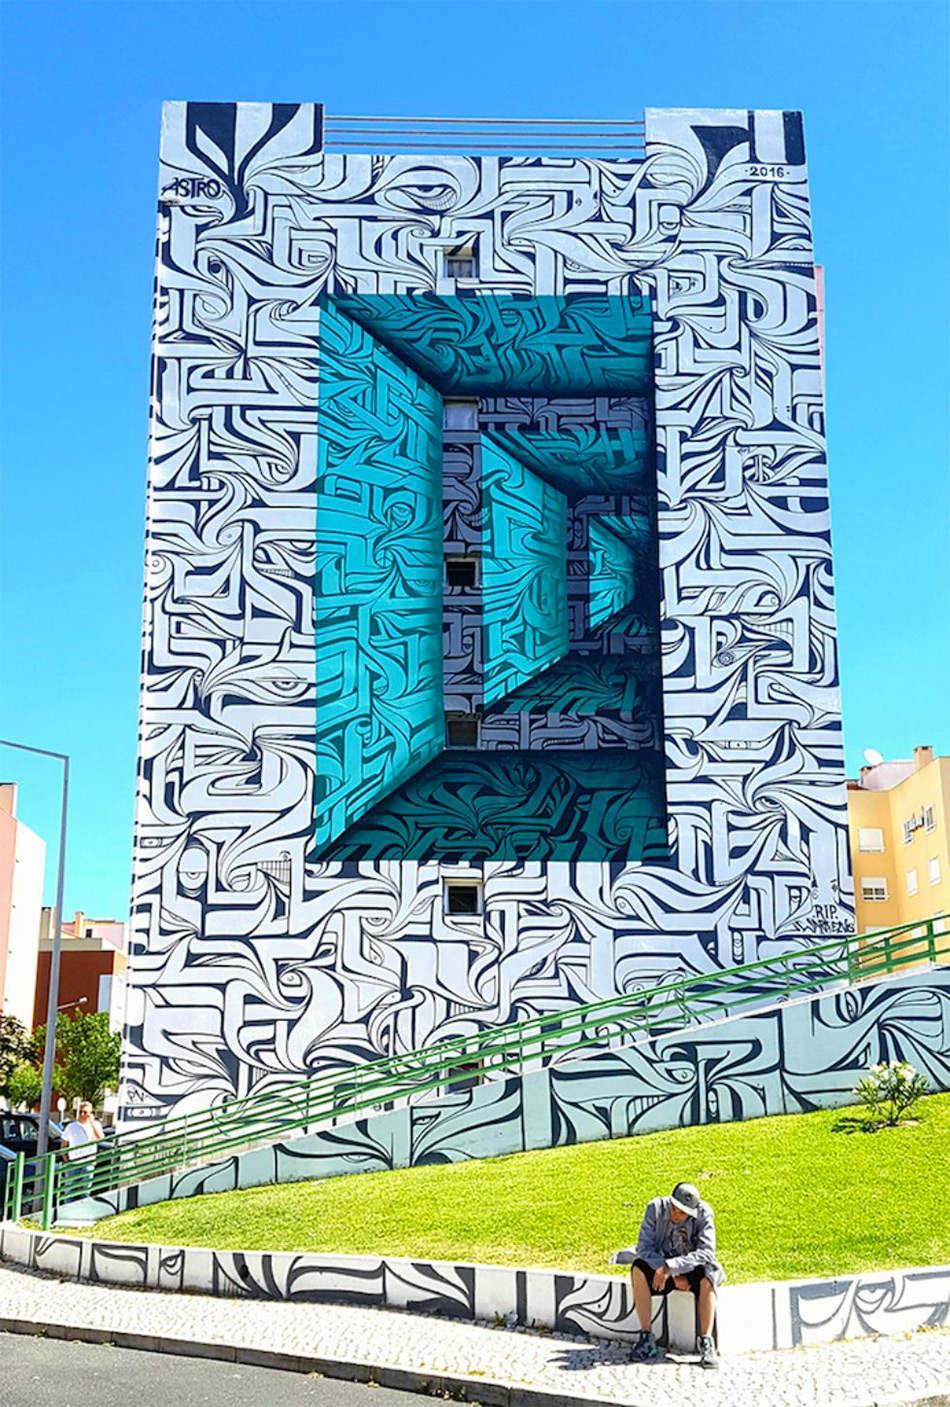 Urban calligraphic optical illusion murals by Astro 2